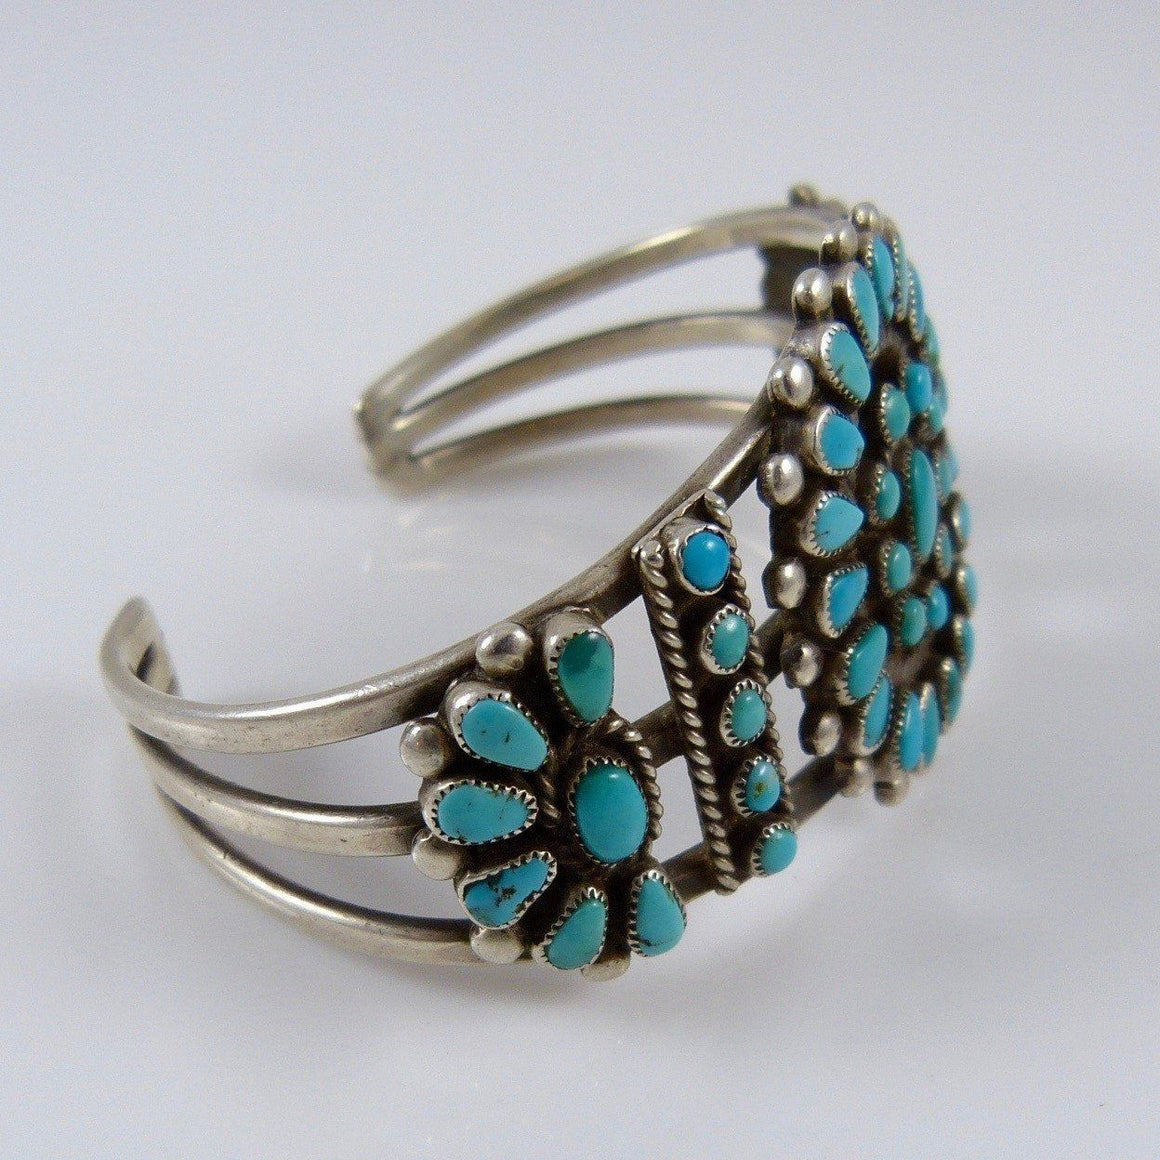 1940s Turquoise Cluster Cuff